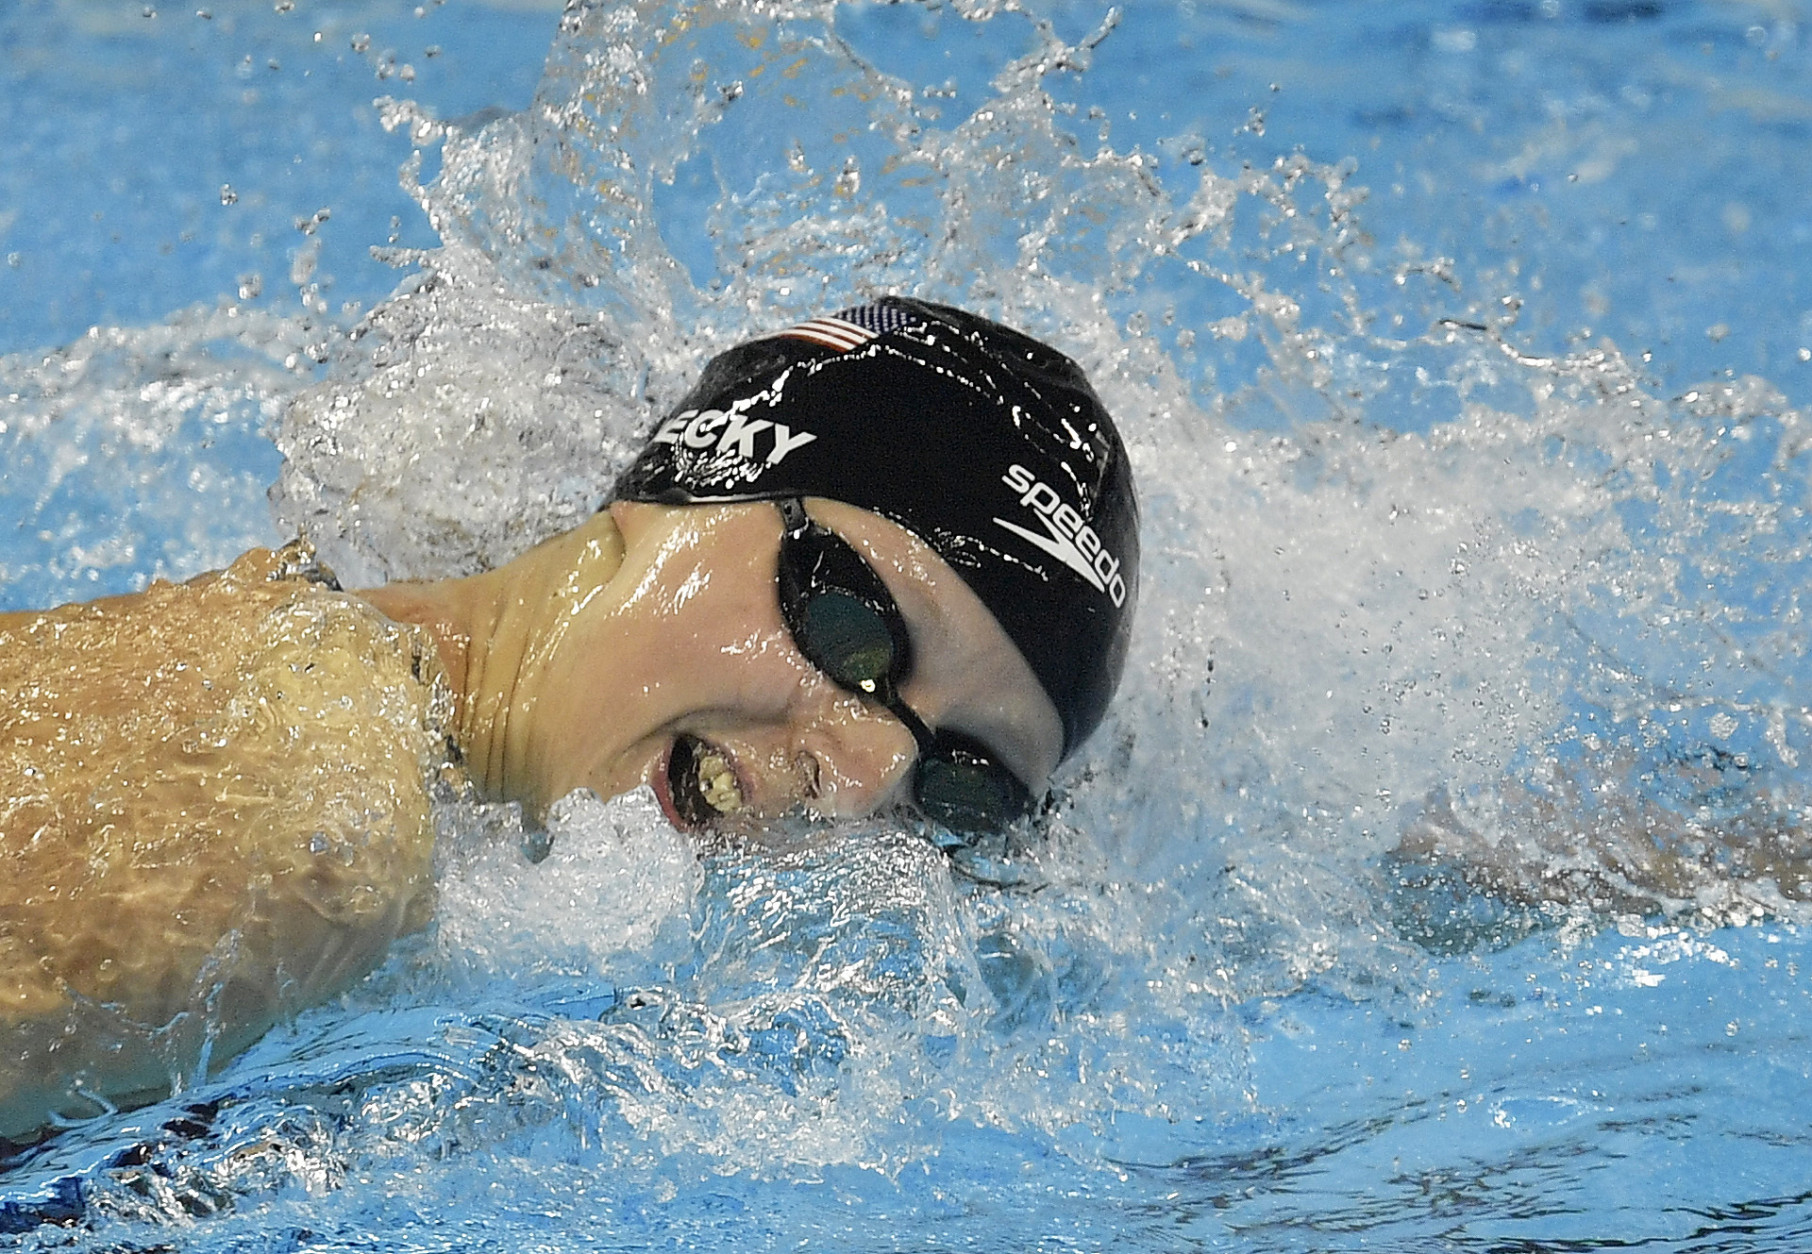 United States' Katie Ledecky competes in the women's 400-meter freestyle final during the swimming competitions at the 2016 Summer Olympics, Sunday, Aug. 7, 2016, in Rio de Janeiro, Brazil. (AP Photo/Martin Meissner)